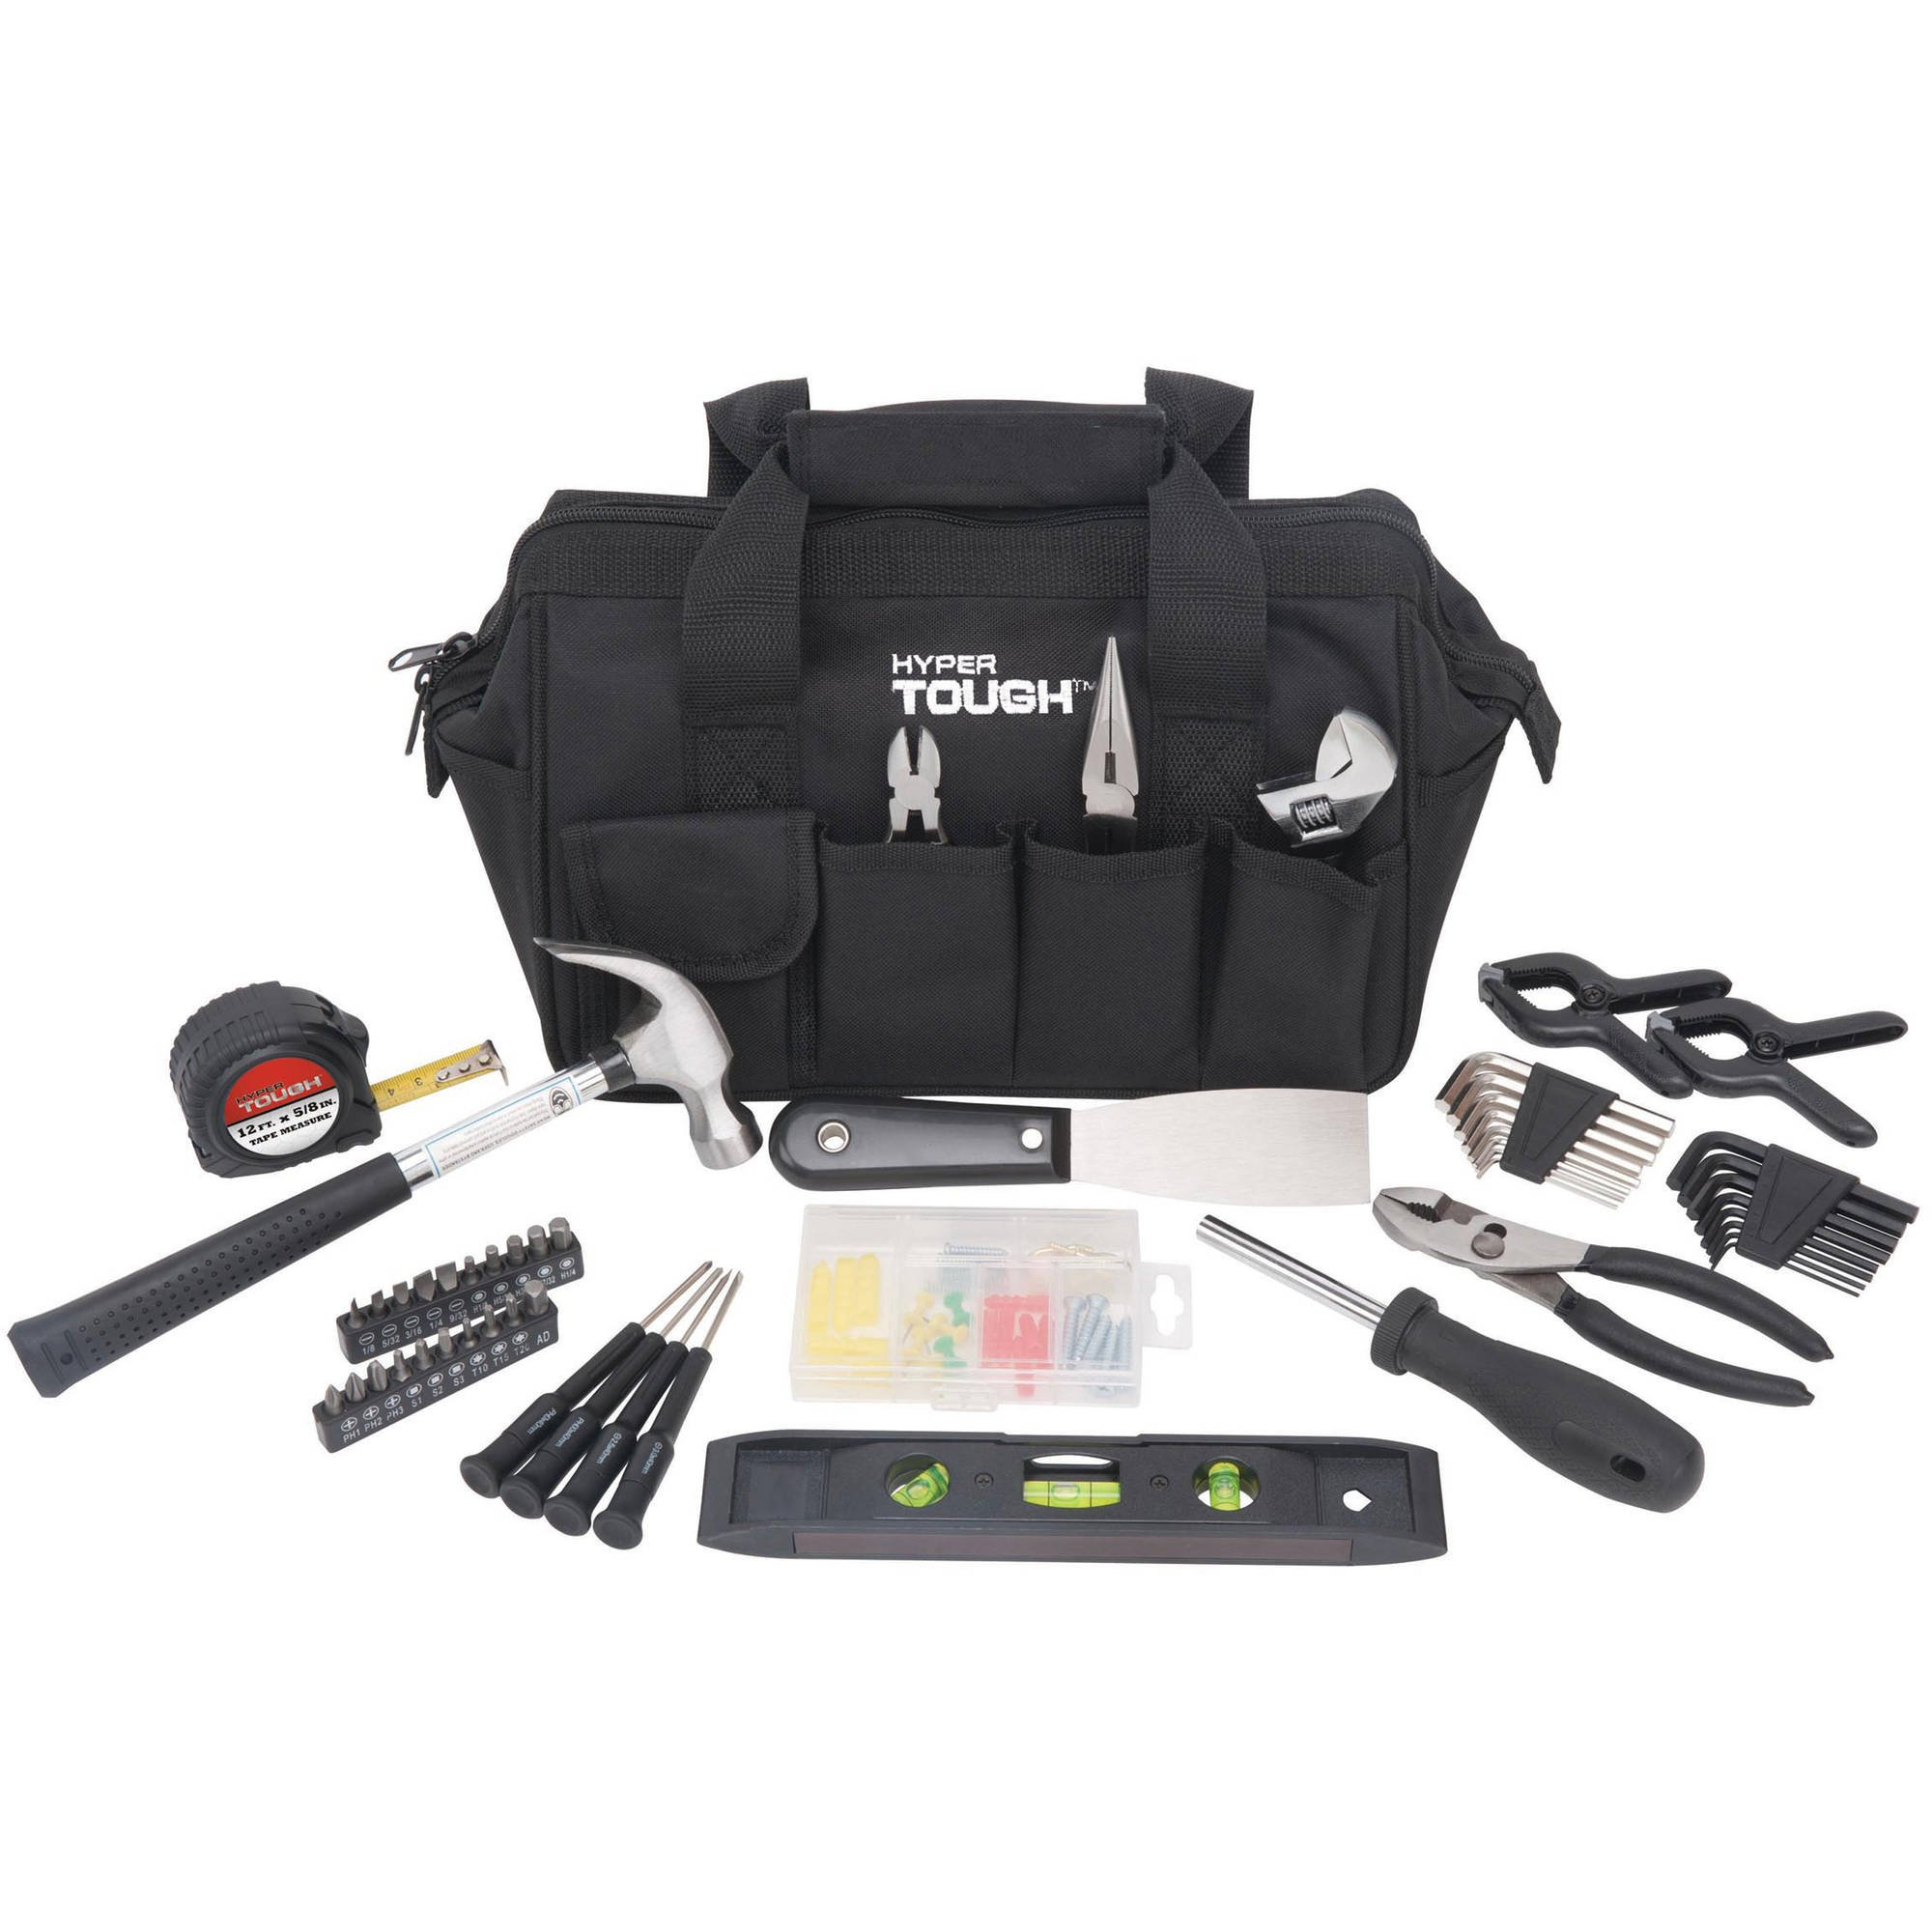 Hyper Tough 53-Piece Around the House Tool Set with Handy Tool Bag, Black by Hyper Tough